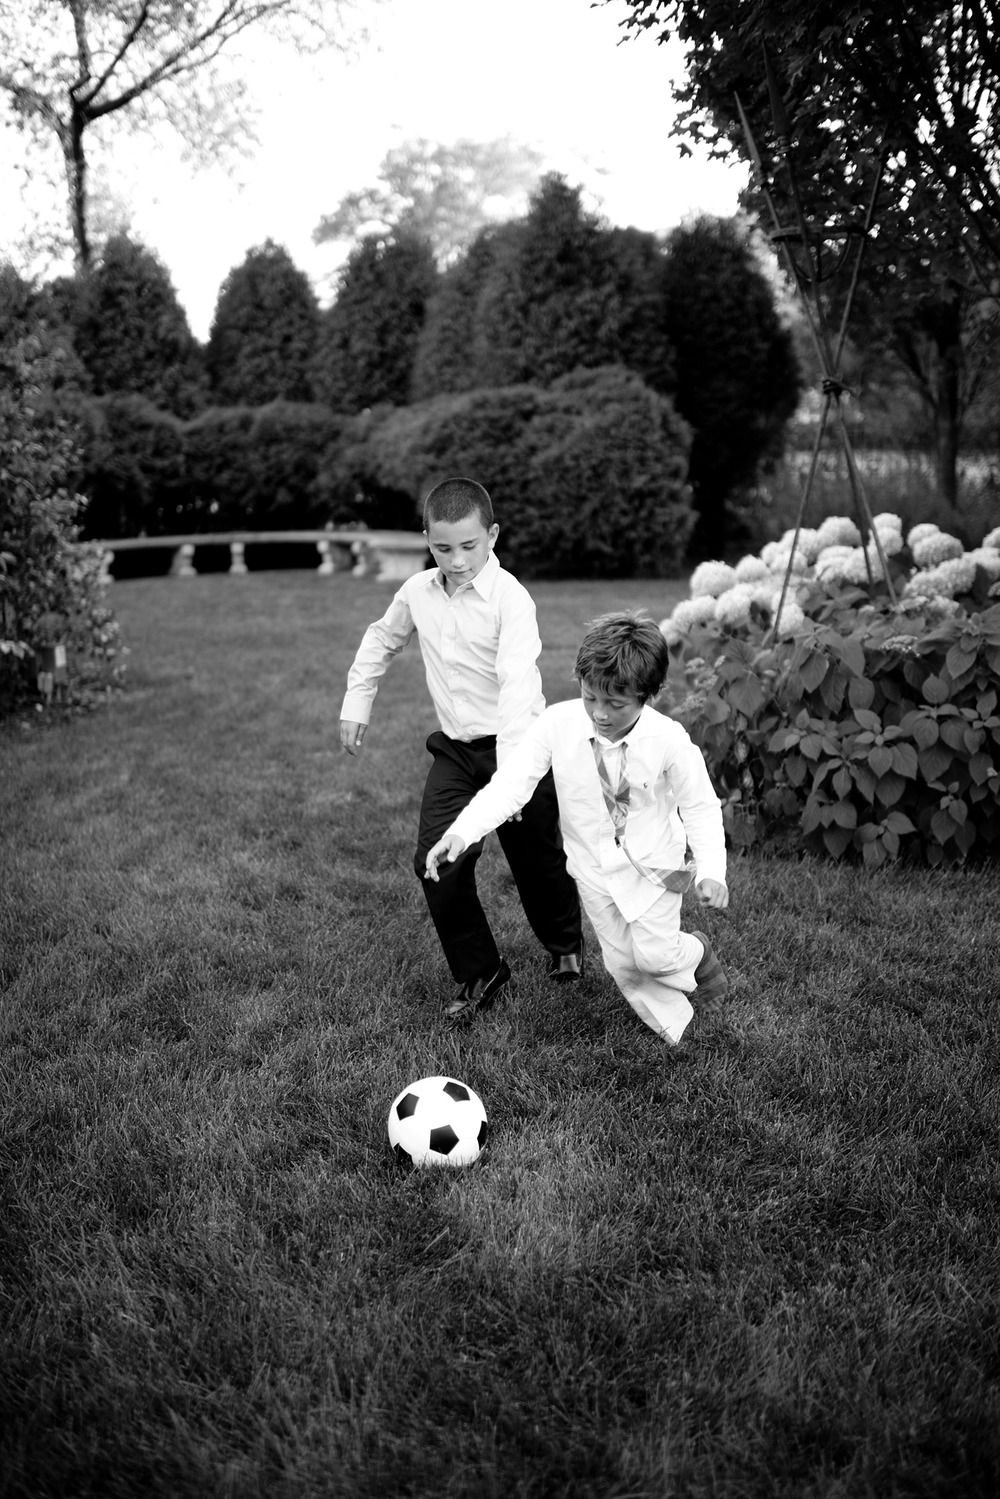 boys play soccer at the cocktail hour during this italian destination wedding at the Italian Villa, The villa Terrace, a beautiful italian wedding venue. Destination wedding photographer Lexia Frank photographs this wedding on film